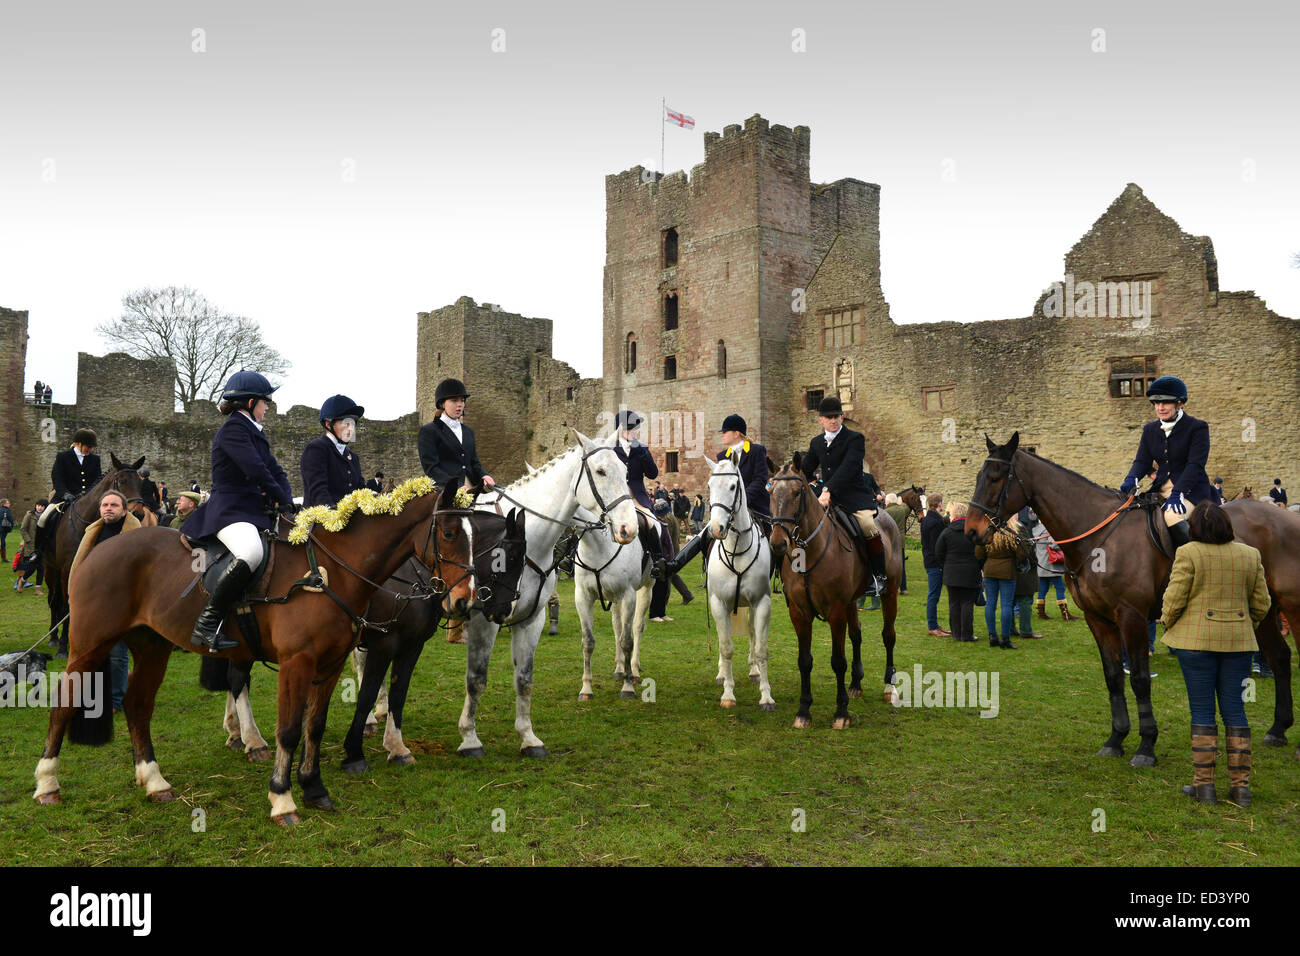 Ludlow Castle, Shropshire, UK. 26th December, 2014. The Ludlow Hunt Boxing Day meet at Ludlow Castle Credit:  David - Stock Image